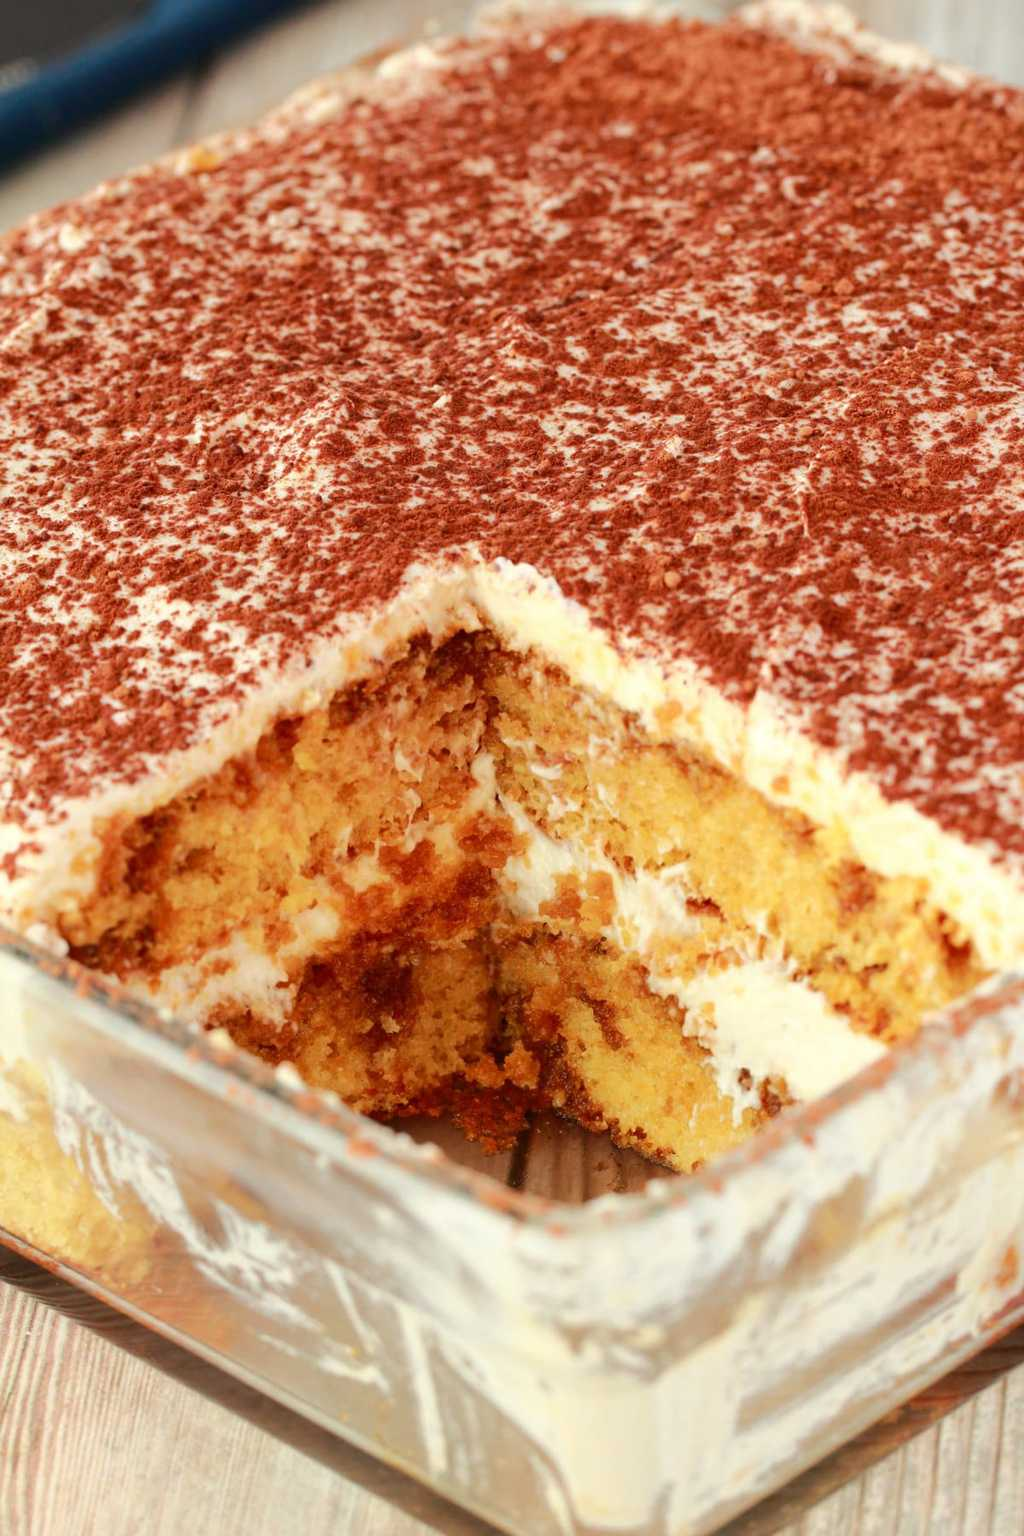 Vegan Tiramisu in a glass dish with one slice removed.